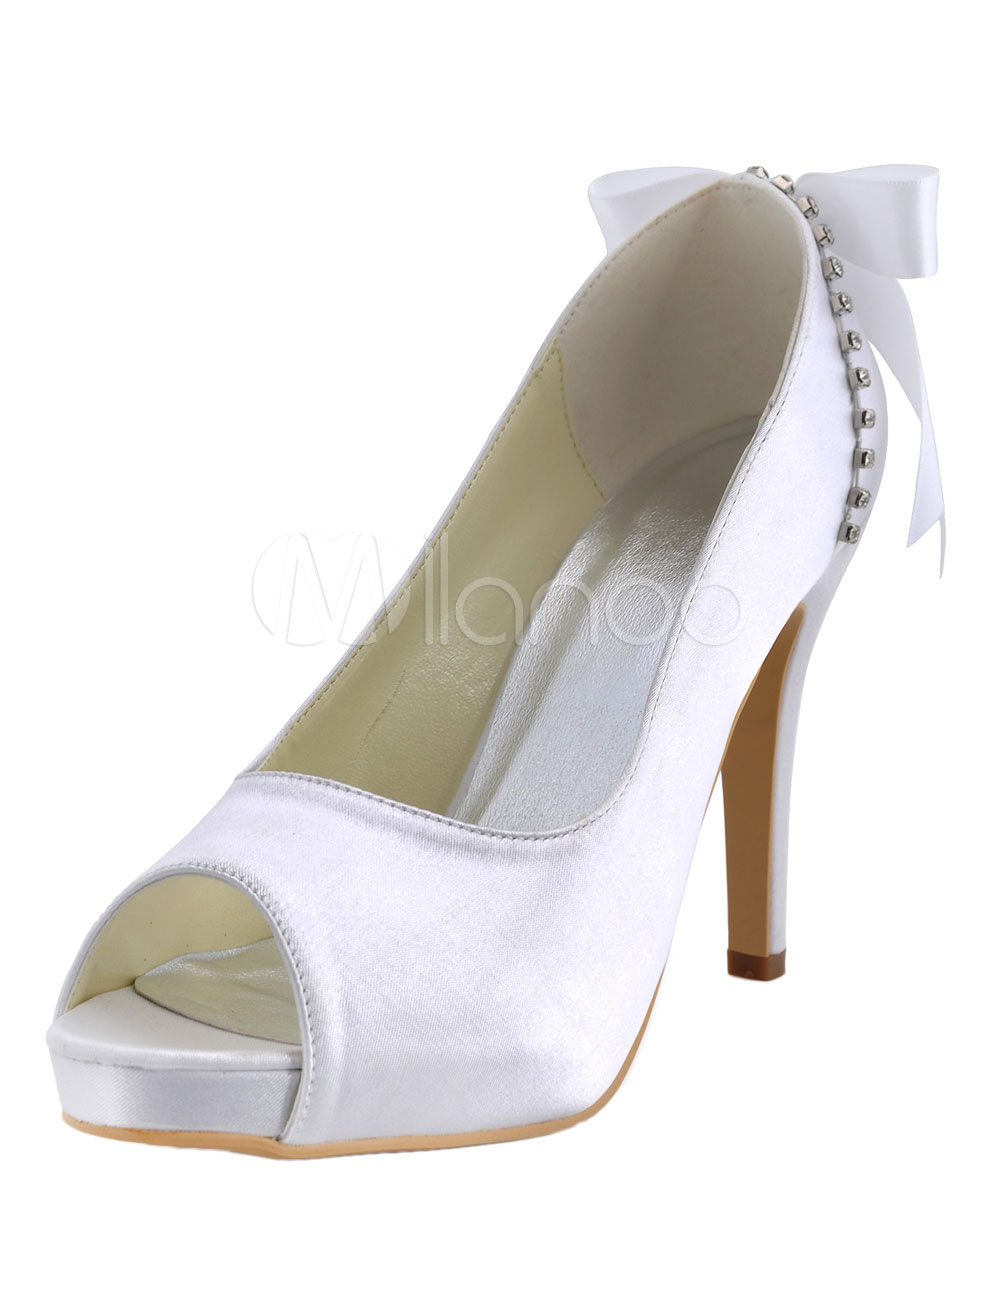 Buy White Silk And Satin Peep Toe Slip-On Rhinestone Bridal Platforms for $50.39 in Milanoo store